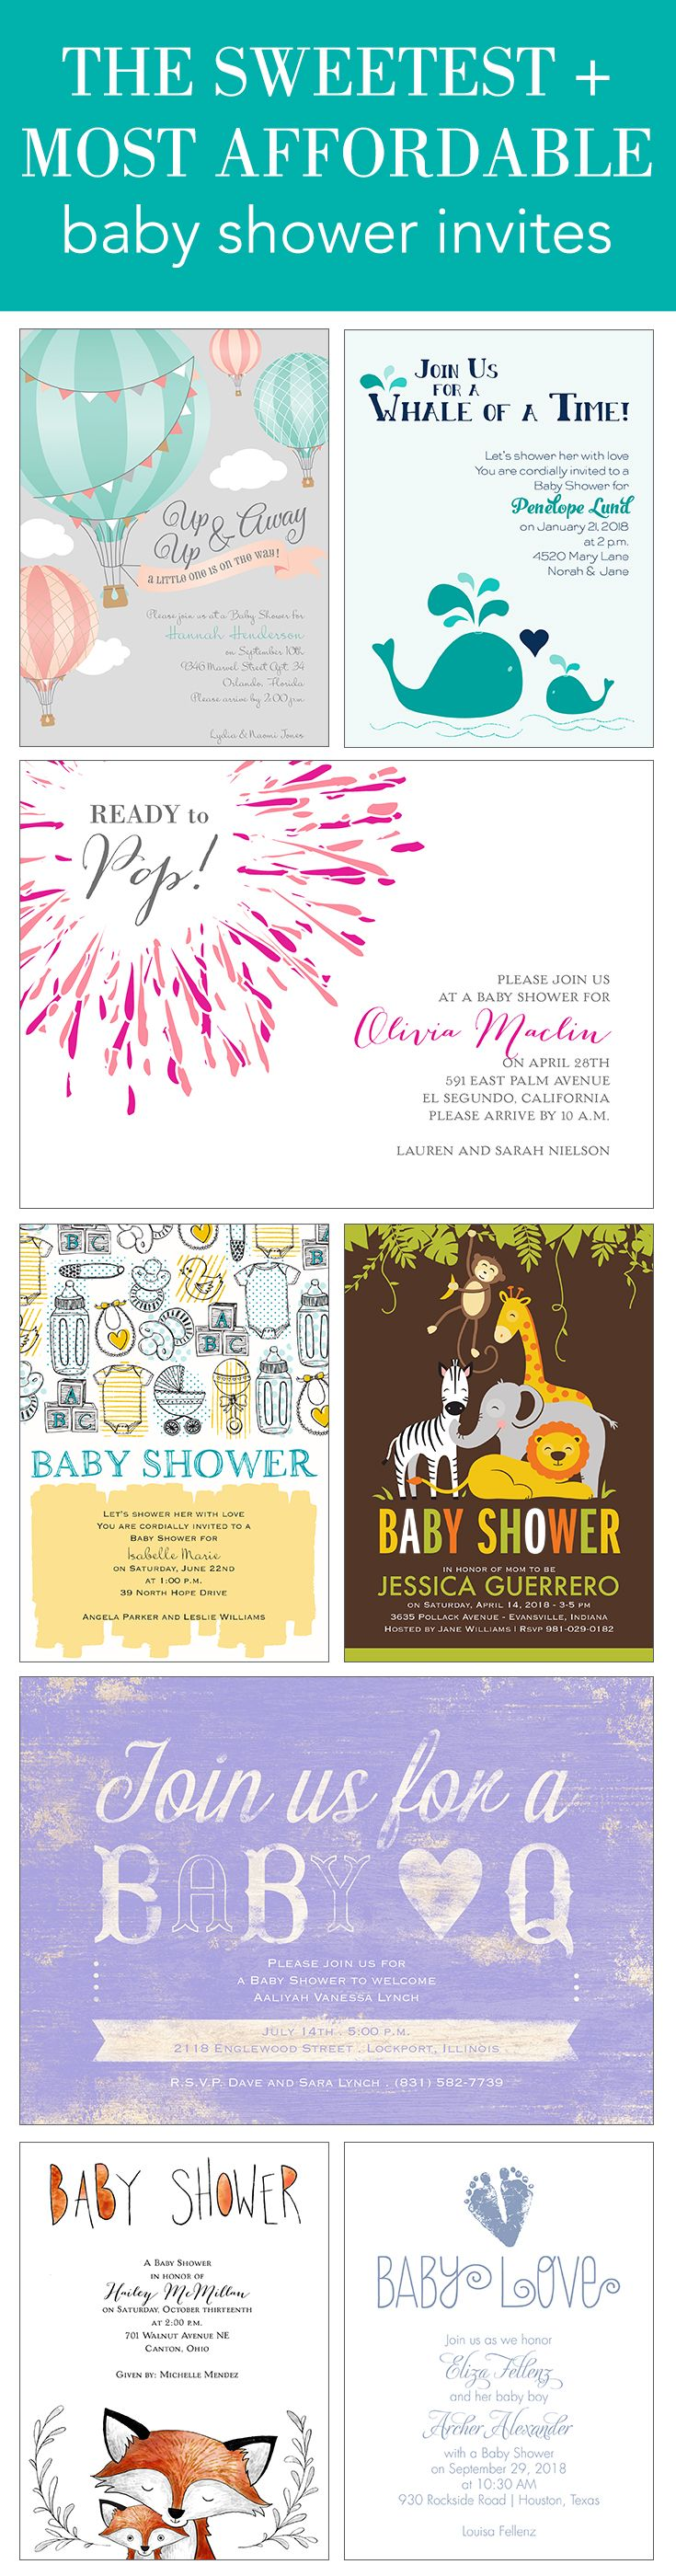 108 best Baby Shower images on Pinterest